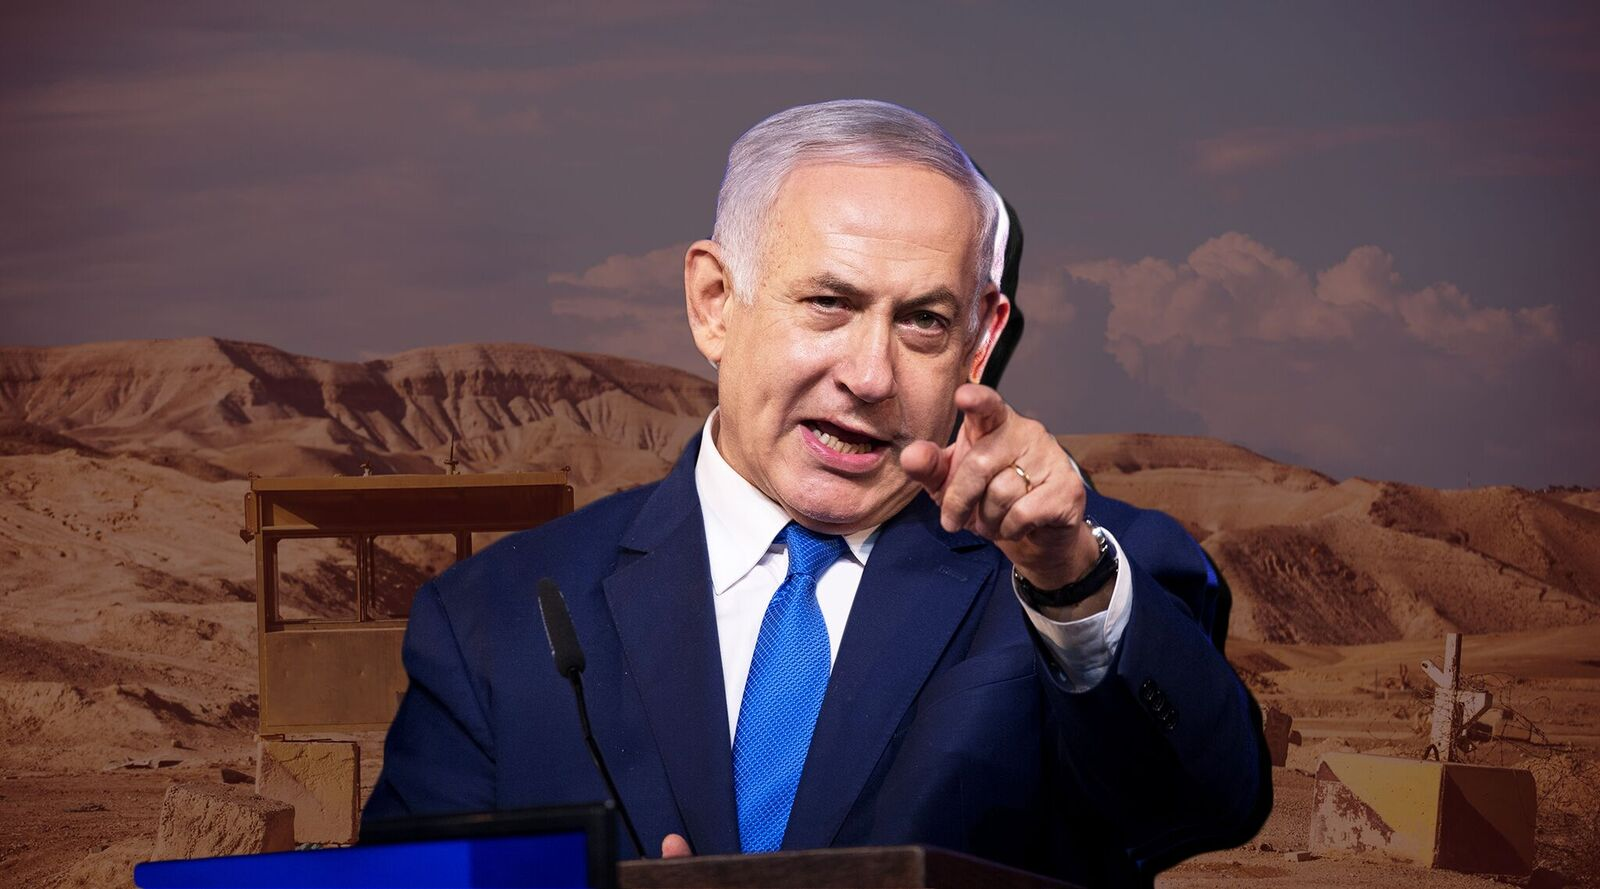 With Prime Minister Benjamin Netanyahu's re-election, annexation of the West Bank became a real possibility. (Montage/JTA-Getty Images-Flash90)